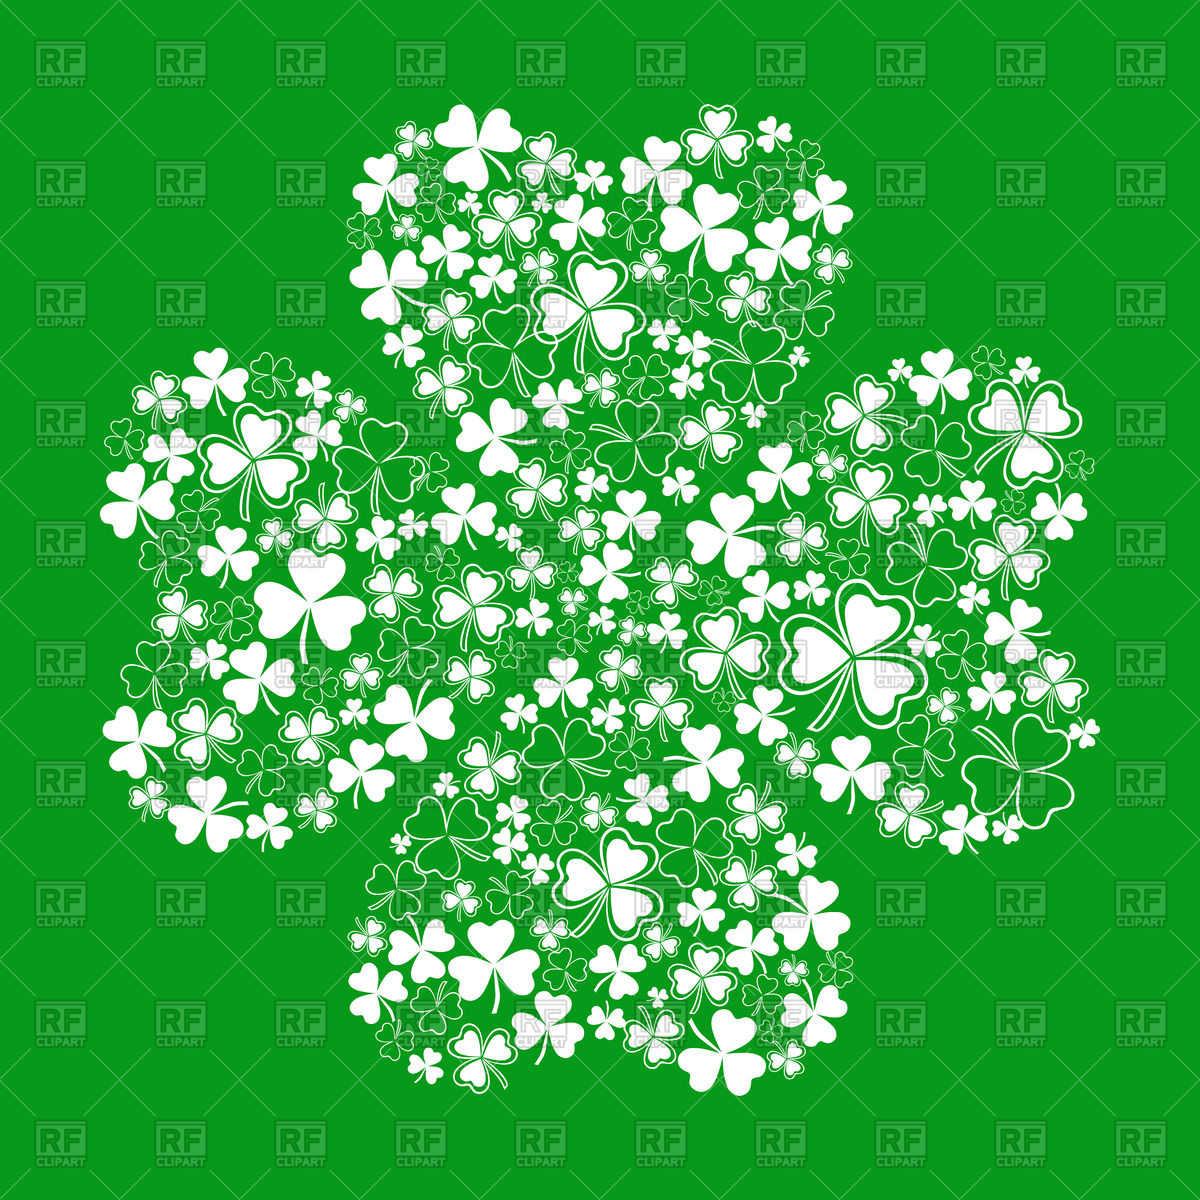 1200x1200 Four Leaf Clover Made Of Small Leaves Of Shamrock Vector Image